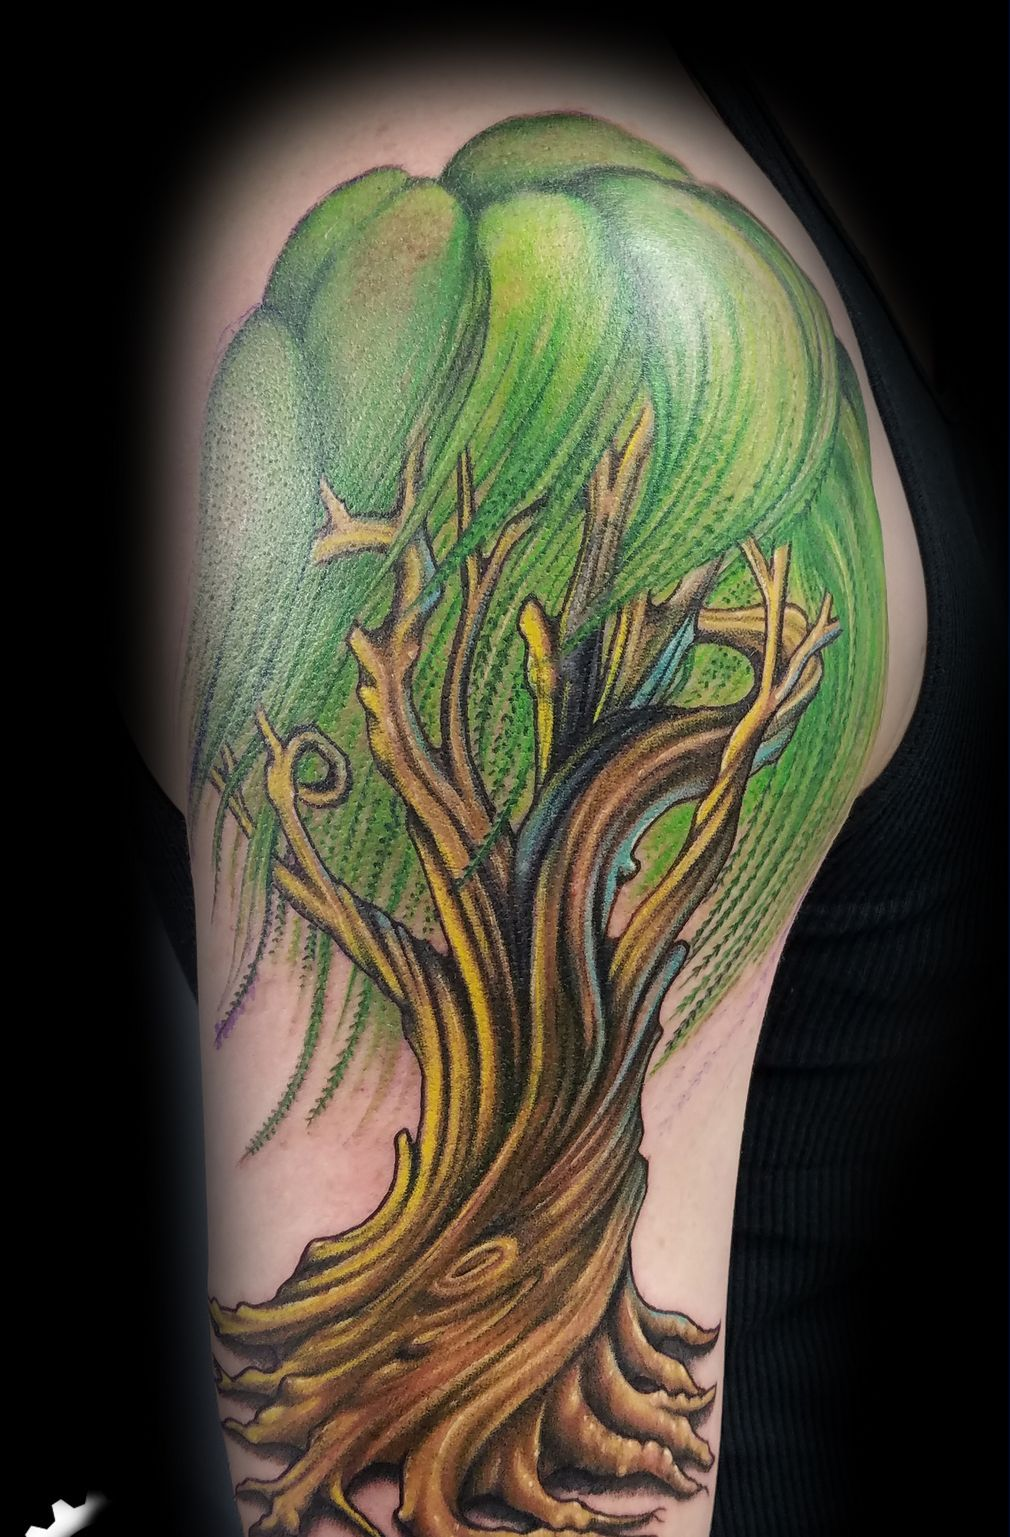 30 willow tree tattoo to boast up symbolism and beauty owls on a 30 willow tree tattoo to boast up symbolism and beauty biocorpaavc Image collections